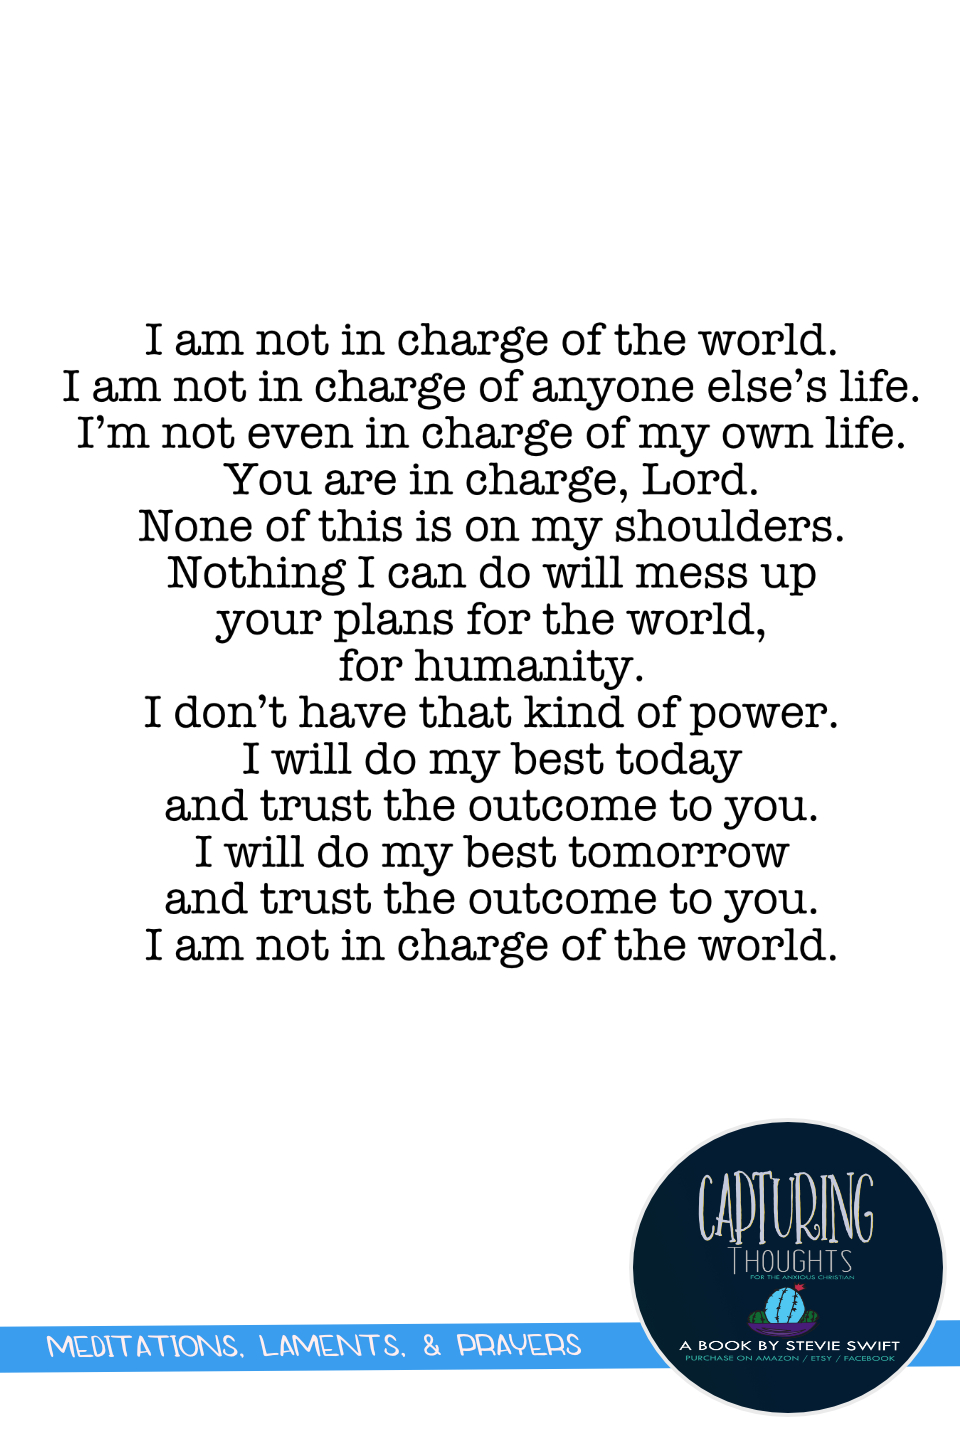 i am not in charge of the world. i am not in charge of anyone else's life. i'm not even in charge of my own life. ou are in charge, Lord. none of this is on my shoulders. nothing i can do will mess up your plans for the world, for humanity.